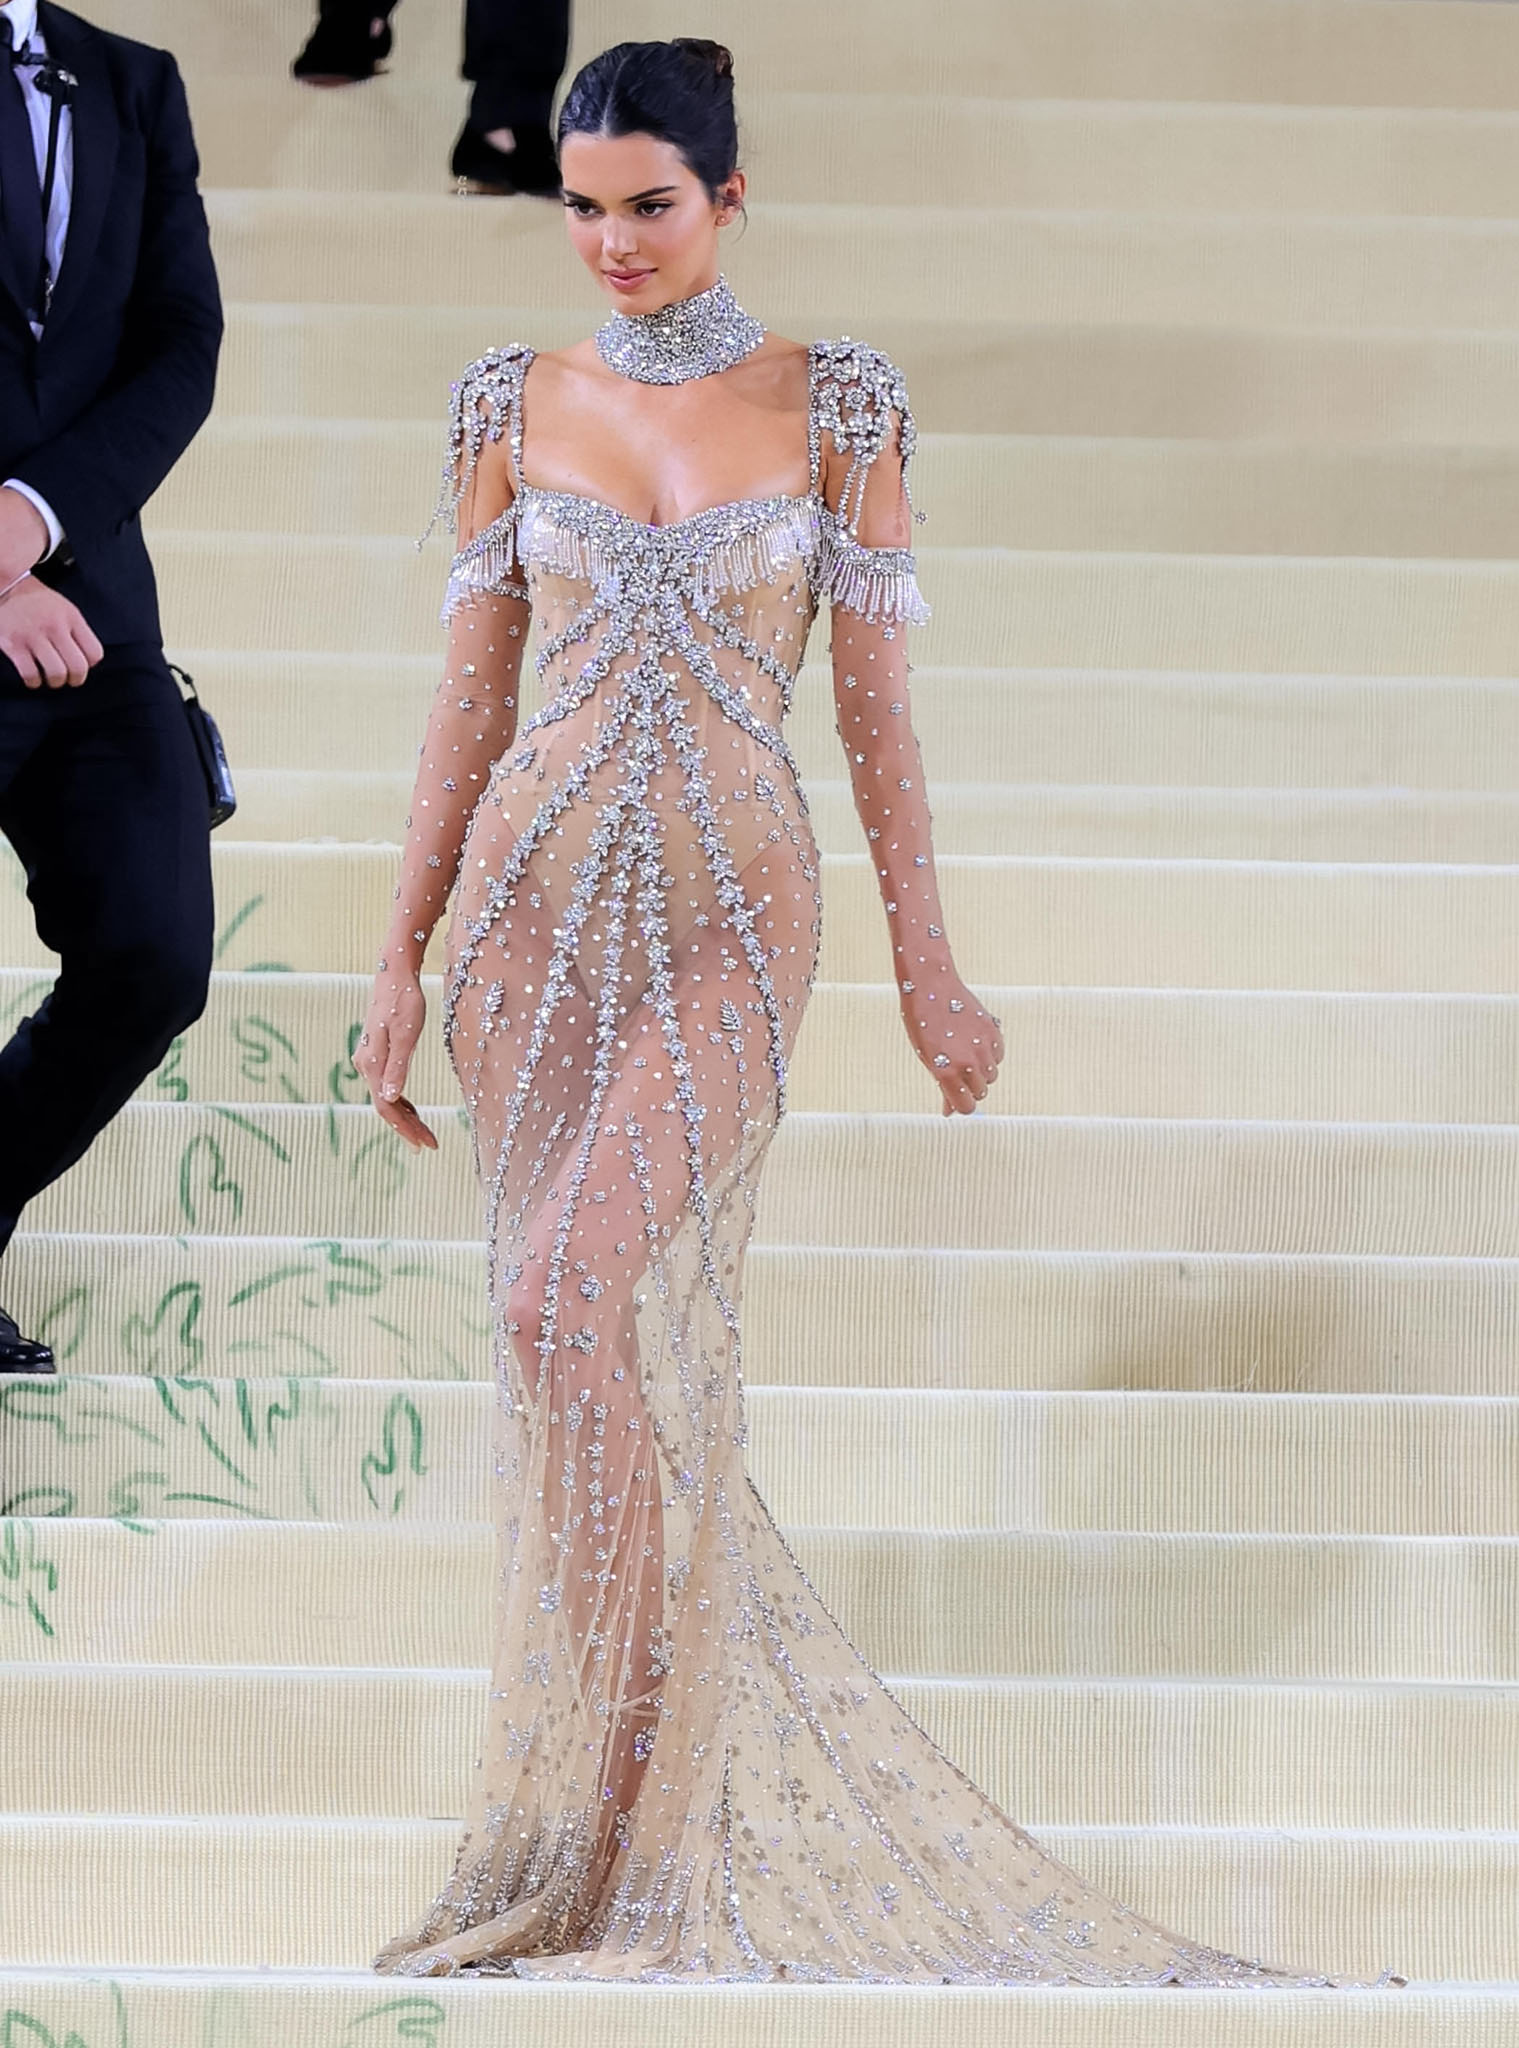 Kendall Jenner commands attention in a sheer gown at the 2021 Met Gala on September 13, 2021